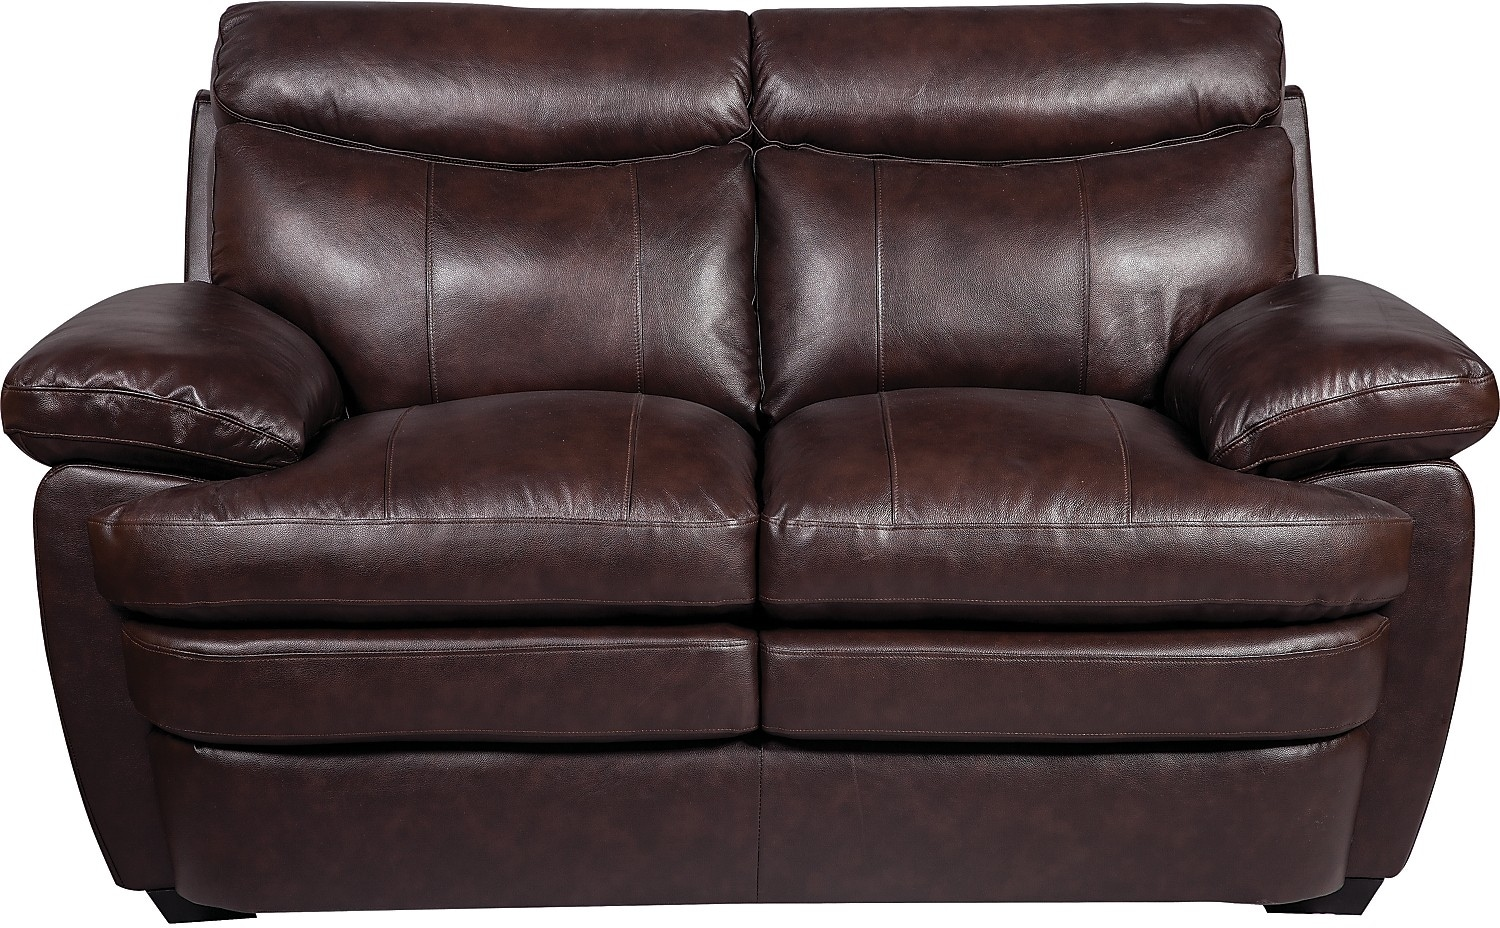 Living Room Furniture - Marty Genuine Leather Loveseat - Brown